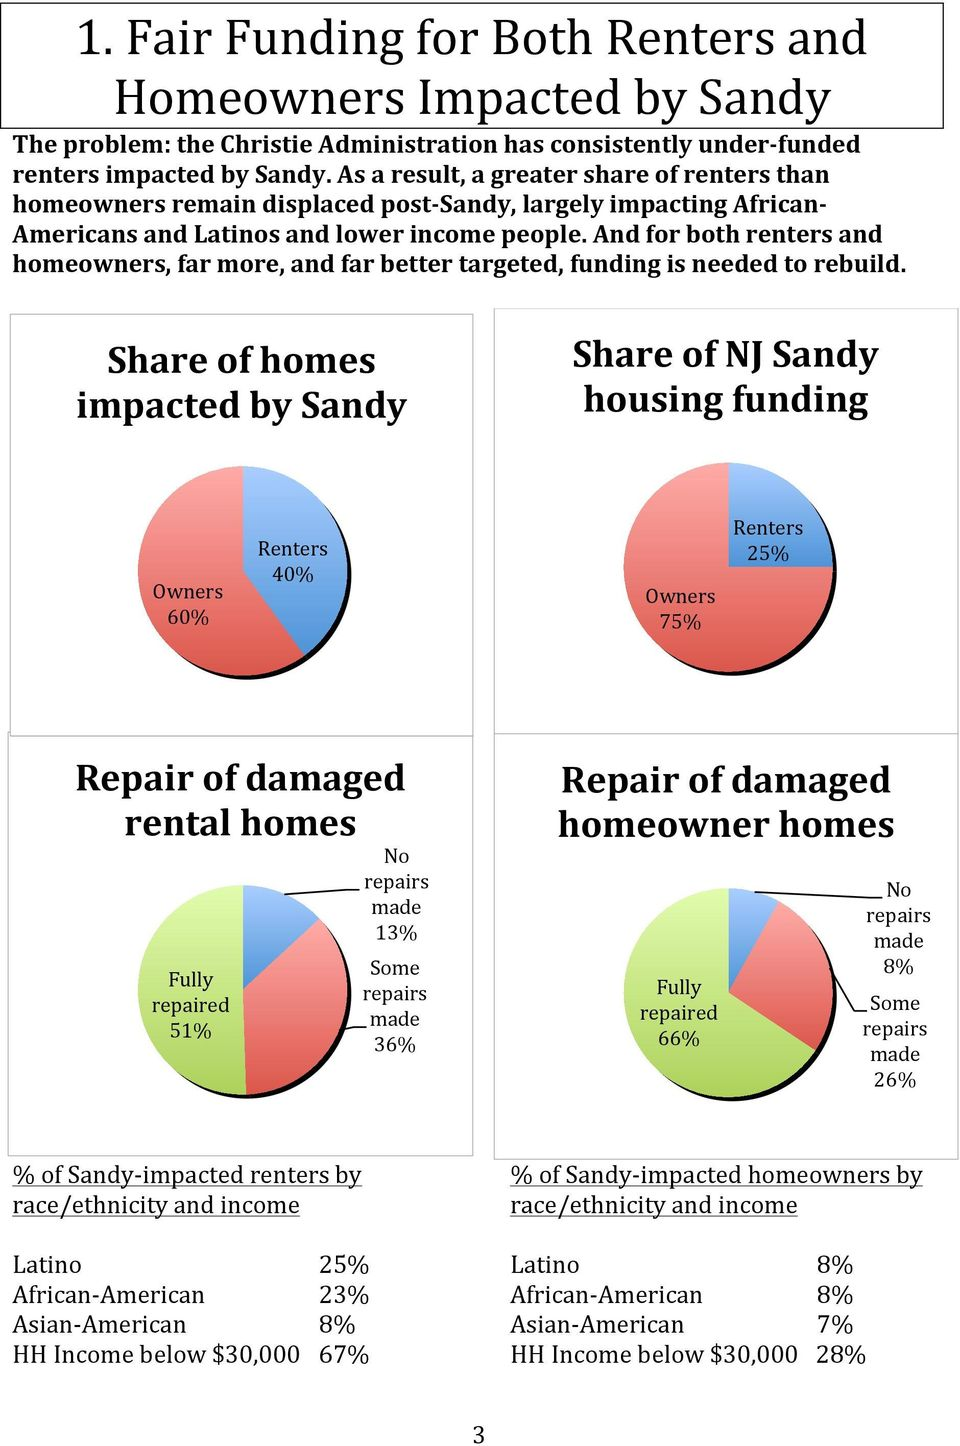 And for both renters and homeowners, far more, and far better targeted, funding is needed to rebuild.